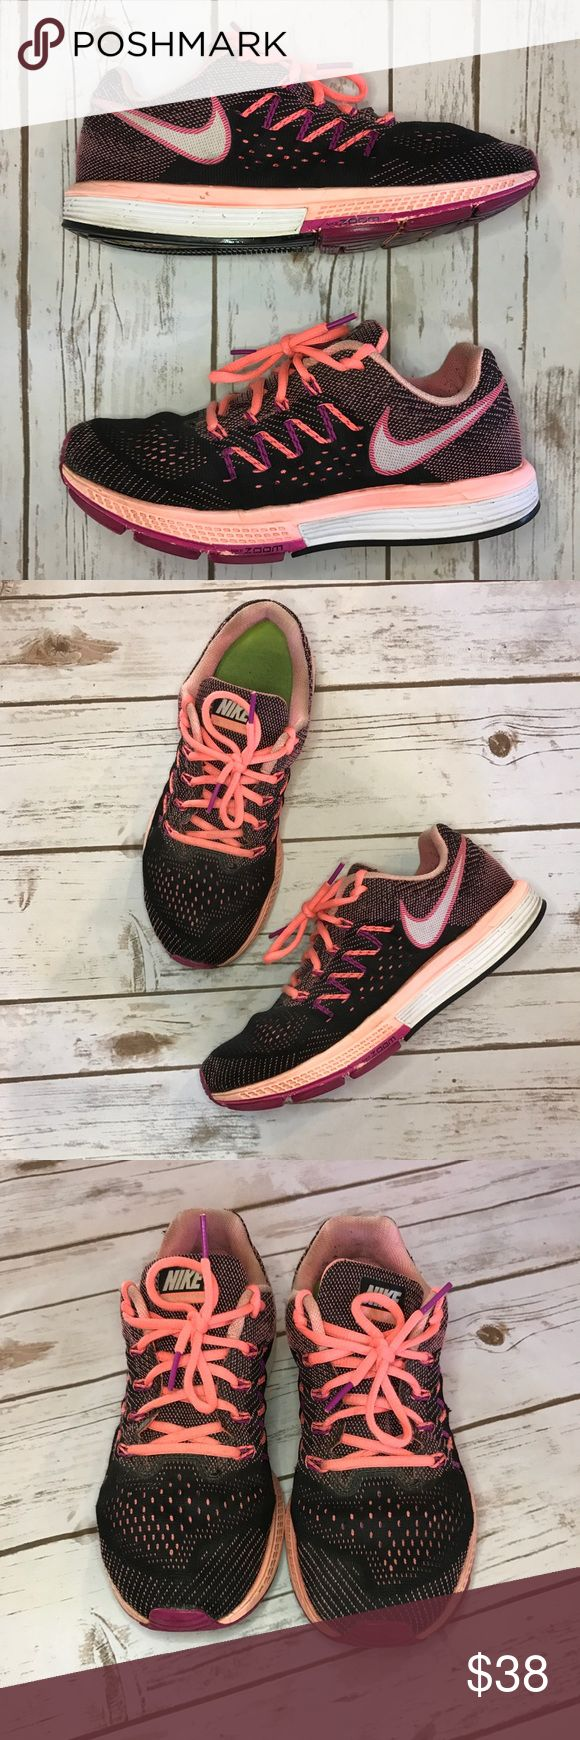 Nike zoom vomero 10 sneakers! Good condition! Nike zoom vomero 10 sneakers! Good used condition! Size 8 Nike Shoes Sneakers